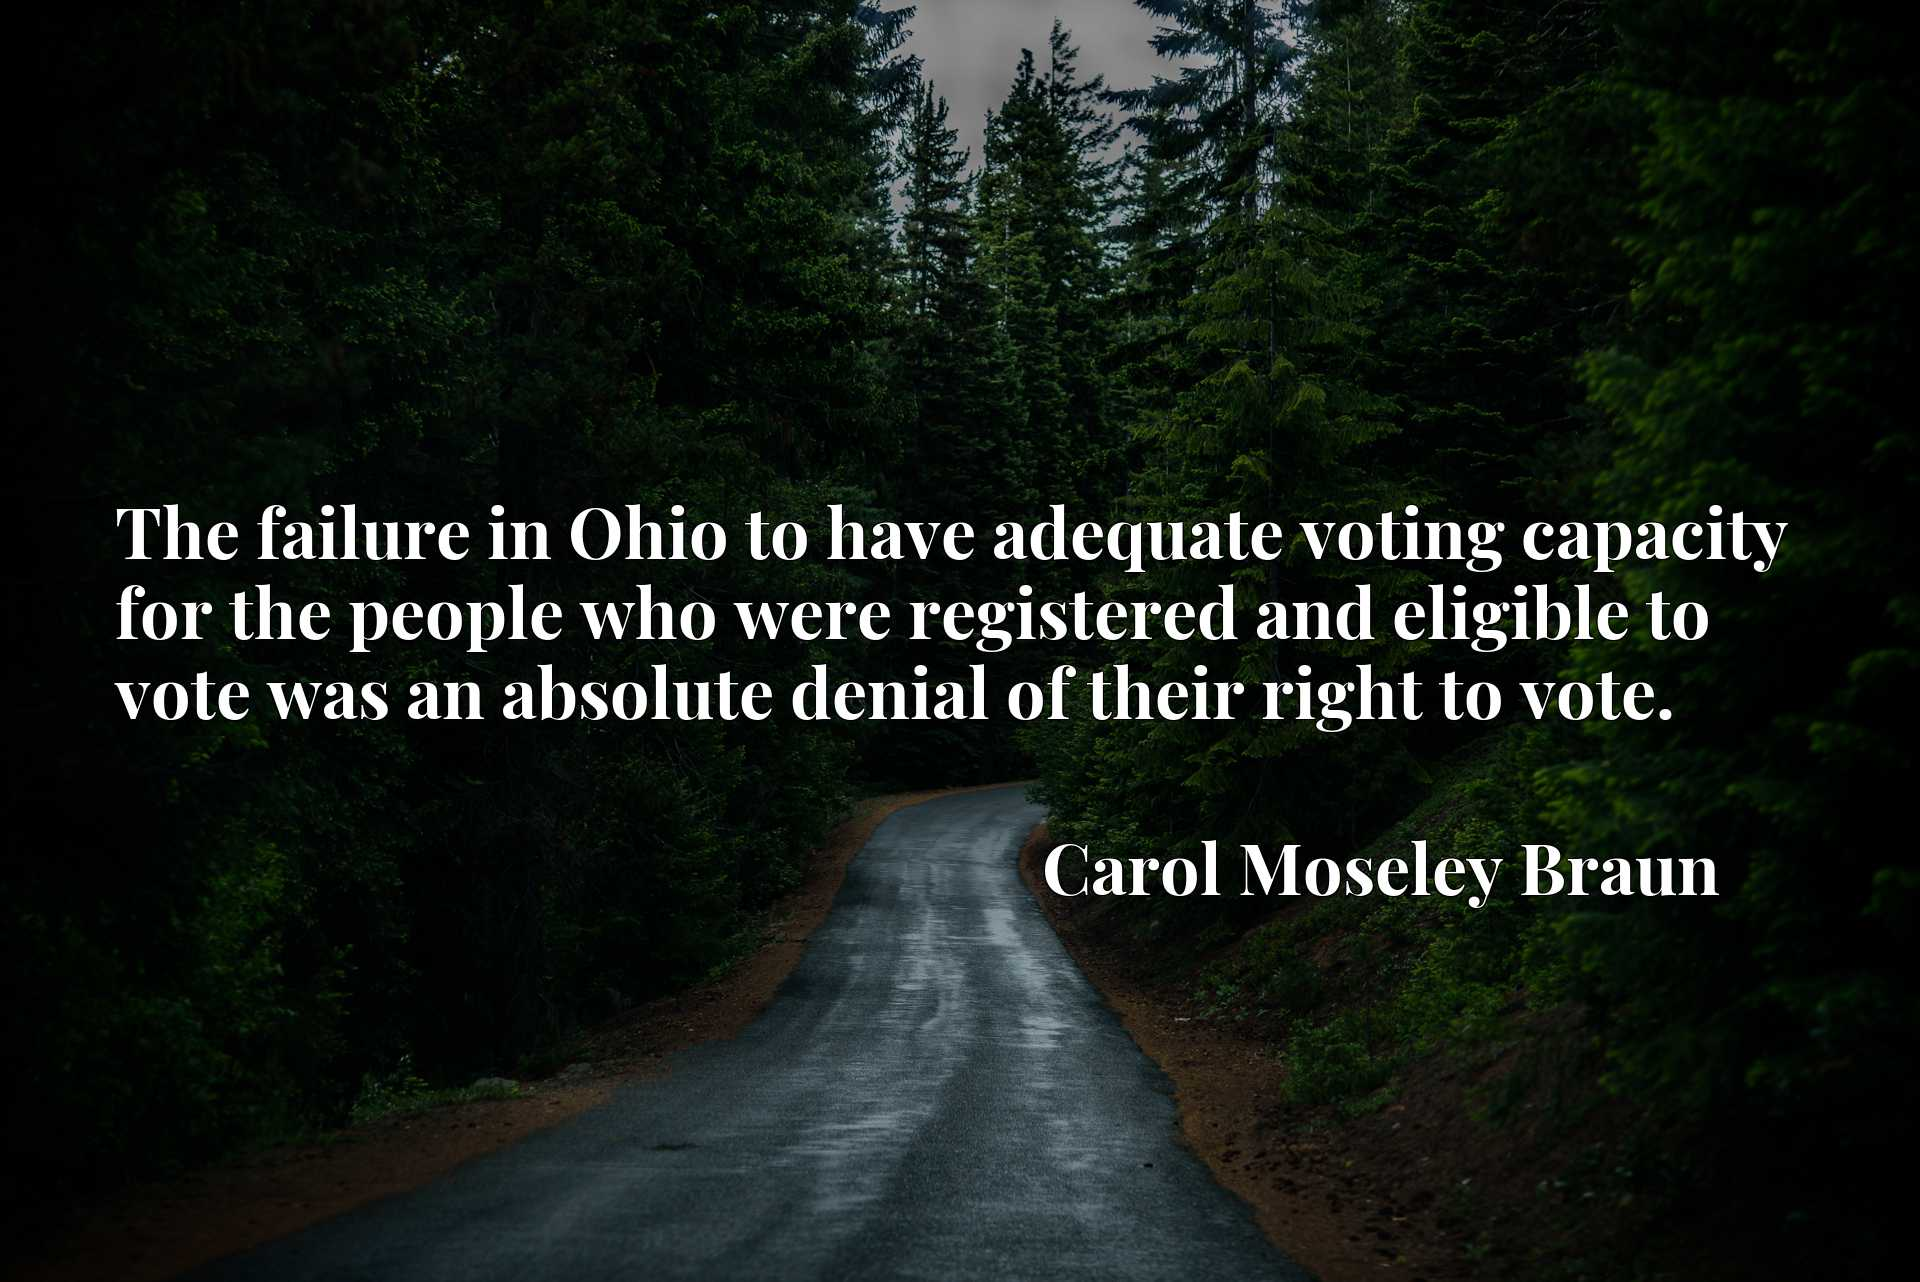 The failure in Ohio to have adequate voting capacity for the people who were registered and eligible to vote was an absolute denial of their right to vote.